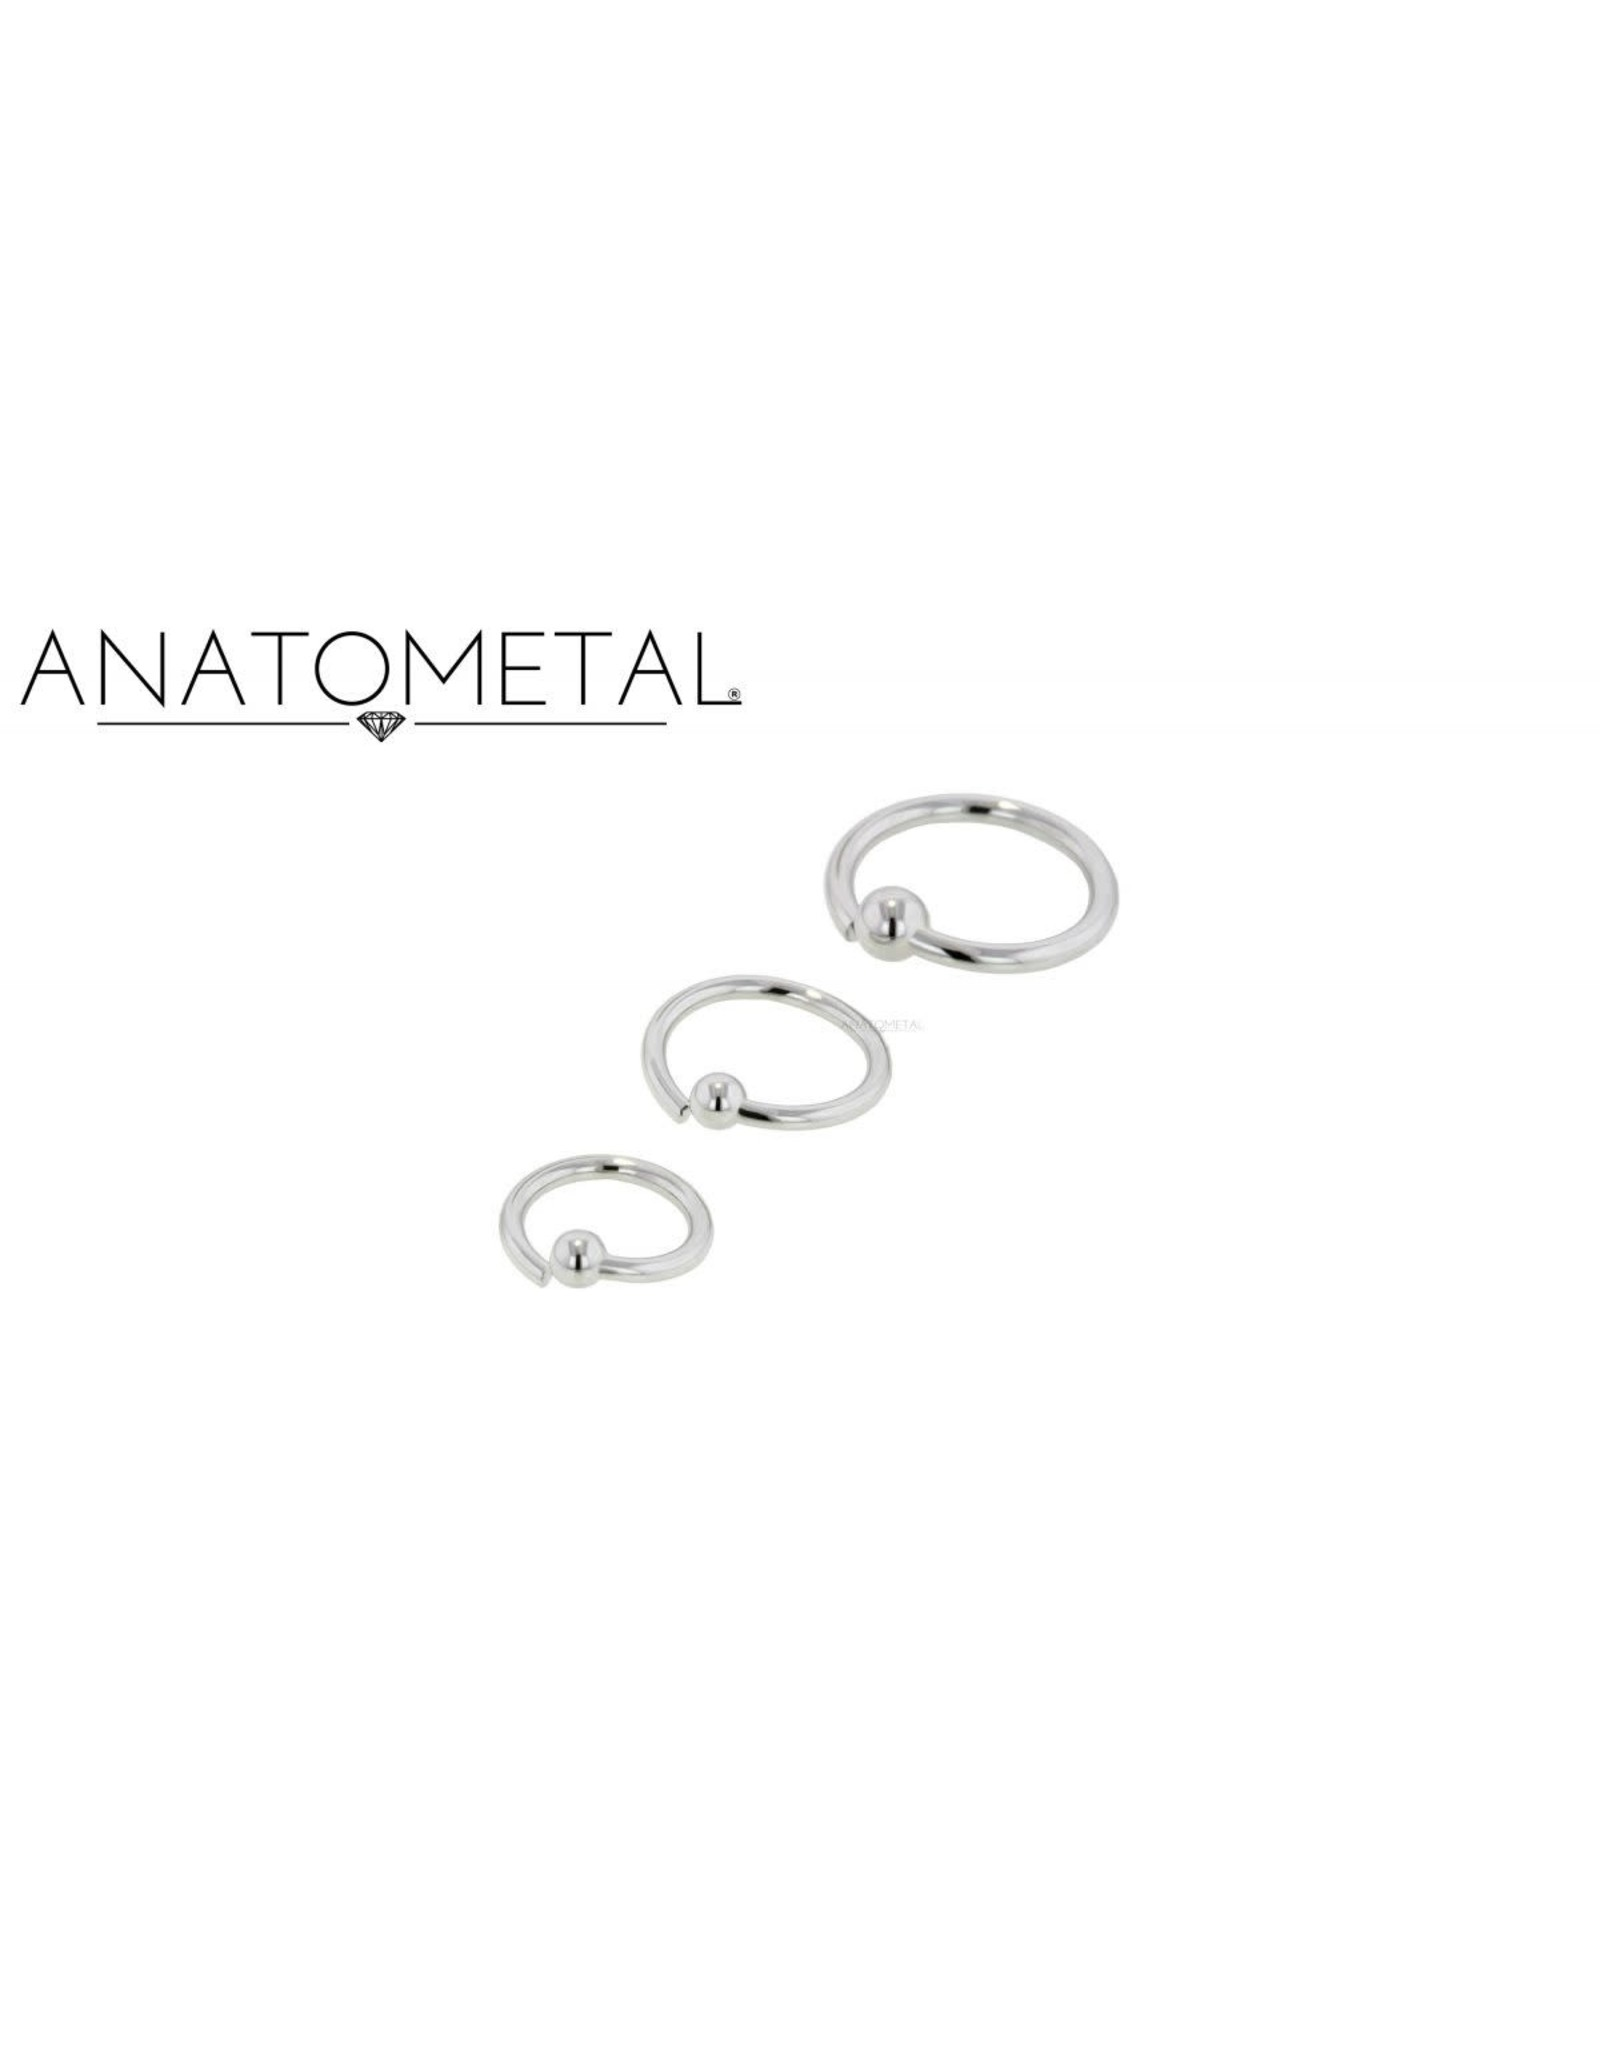 Anatometal Anatometal 20g steel fixed bead ring